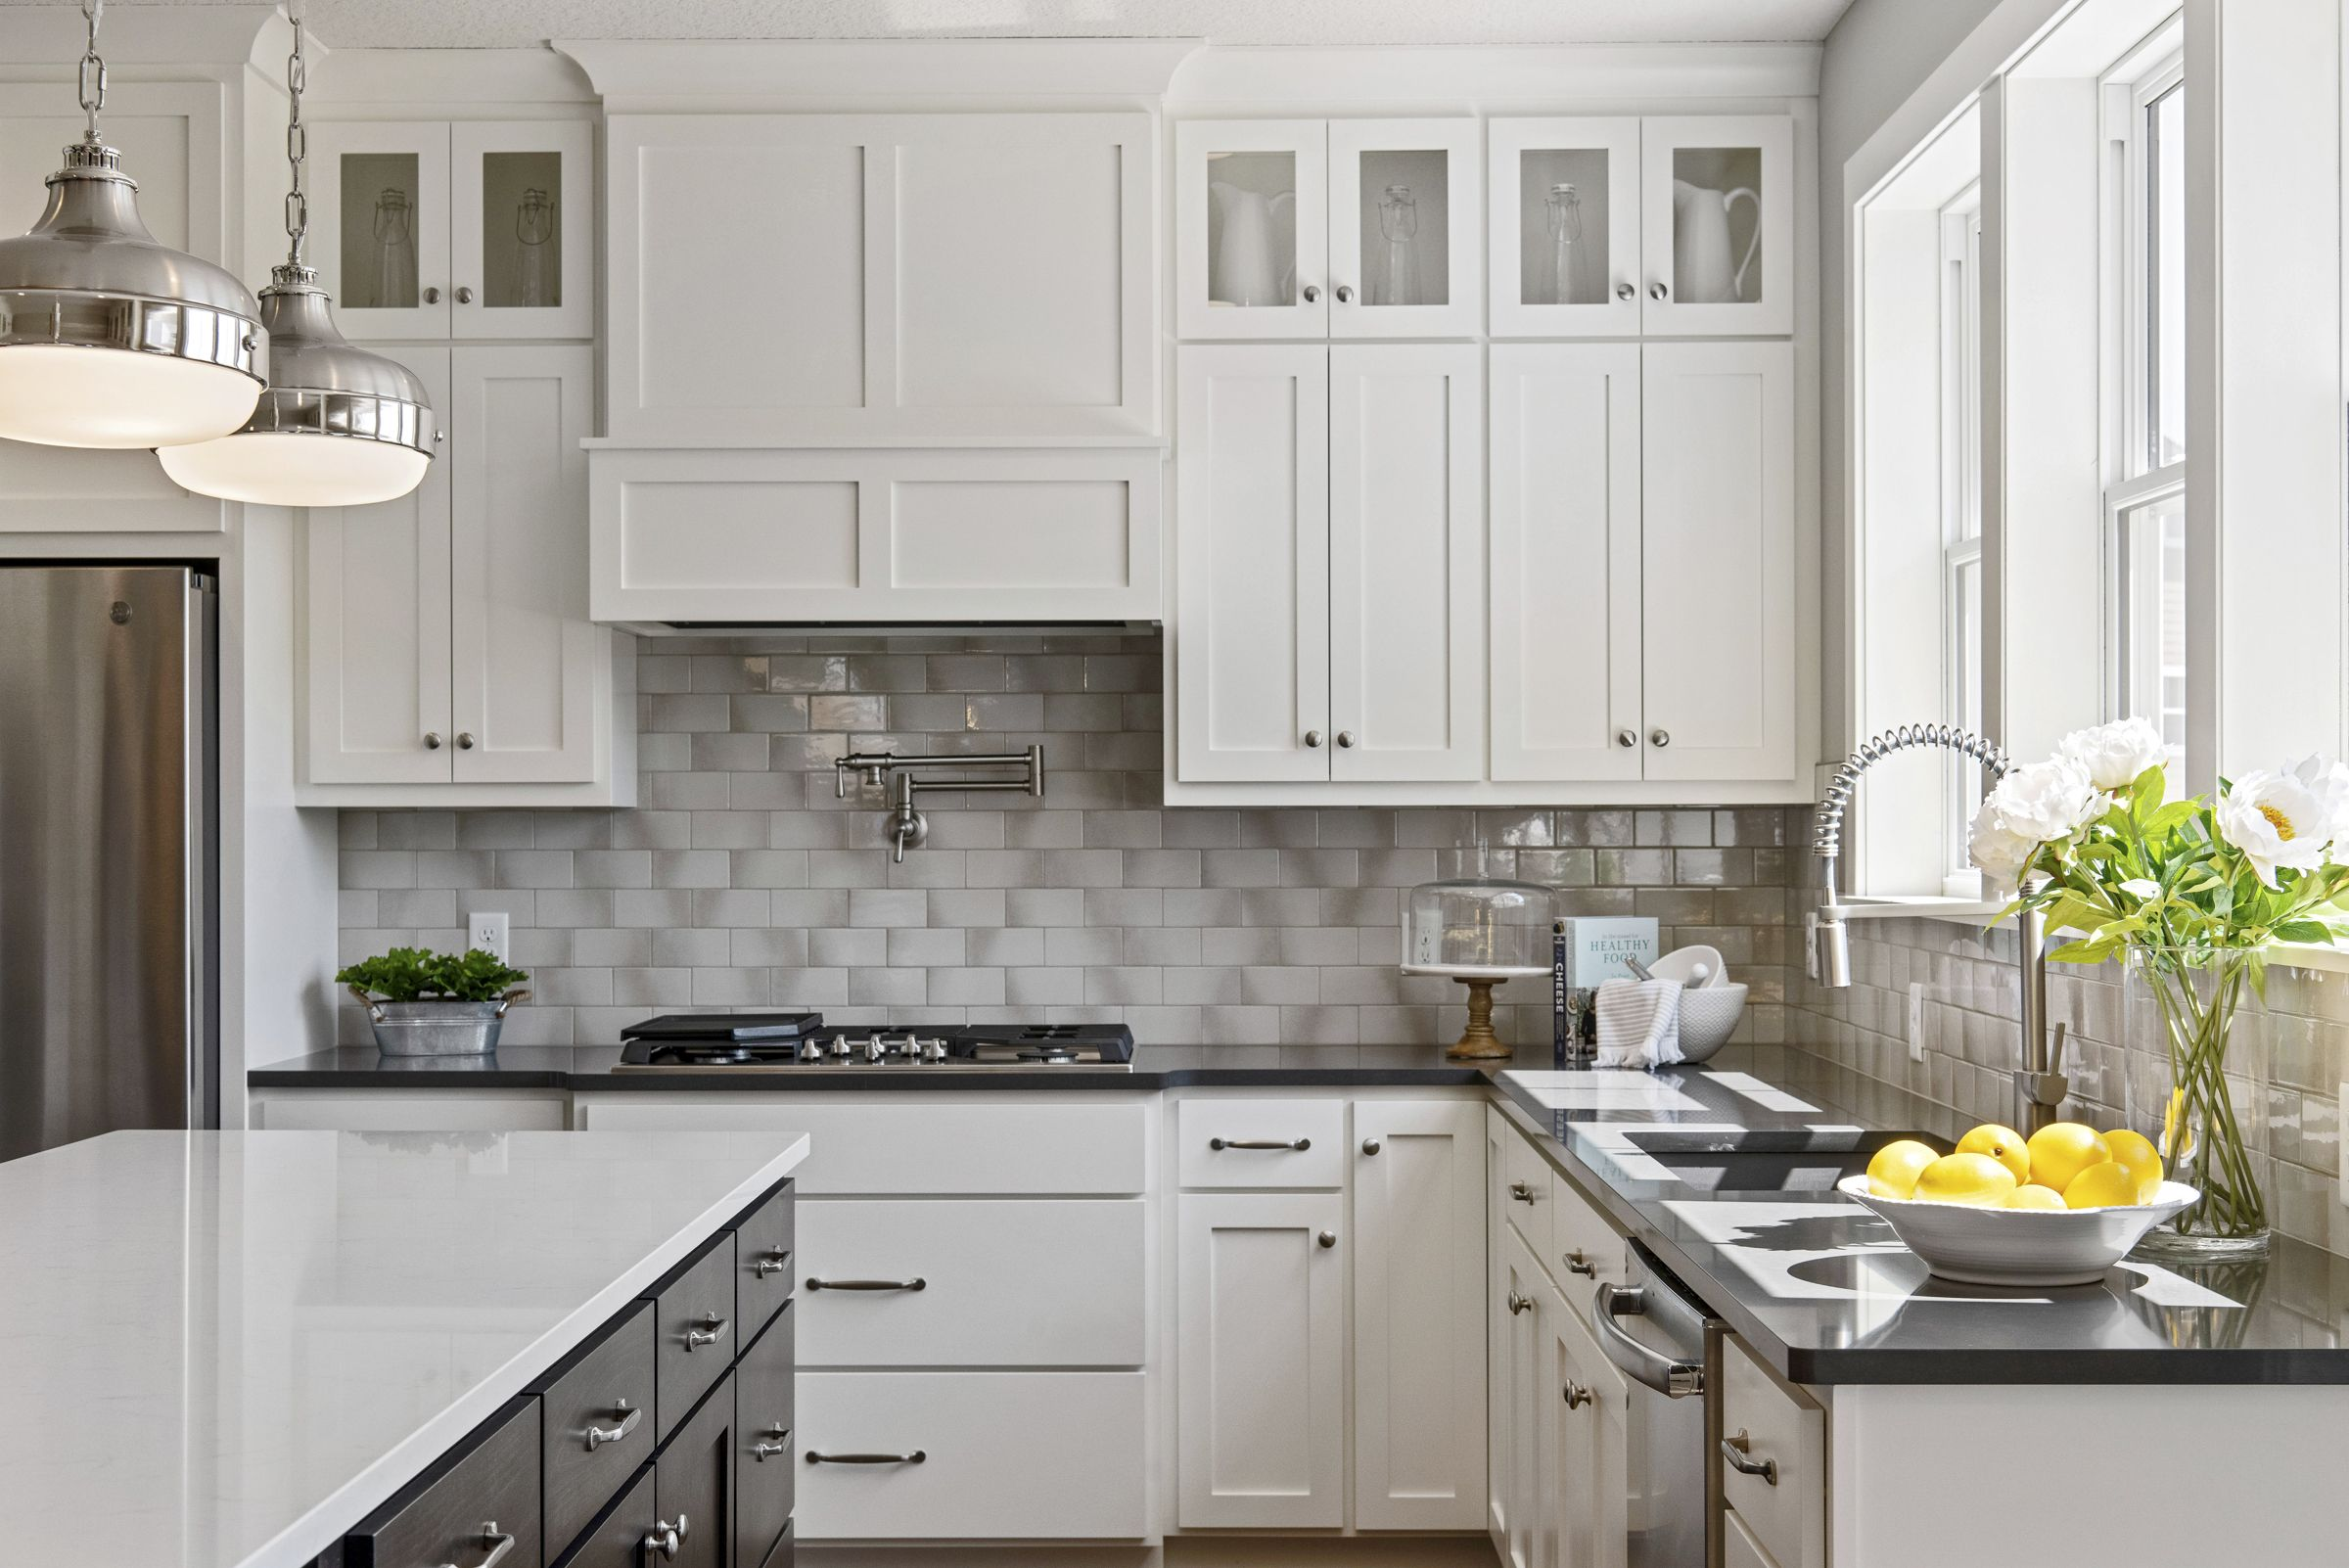 Chef's dream kitchen with large windows above under mount ...